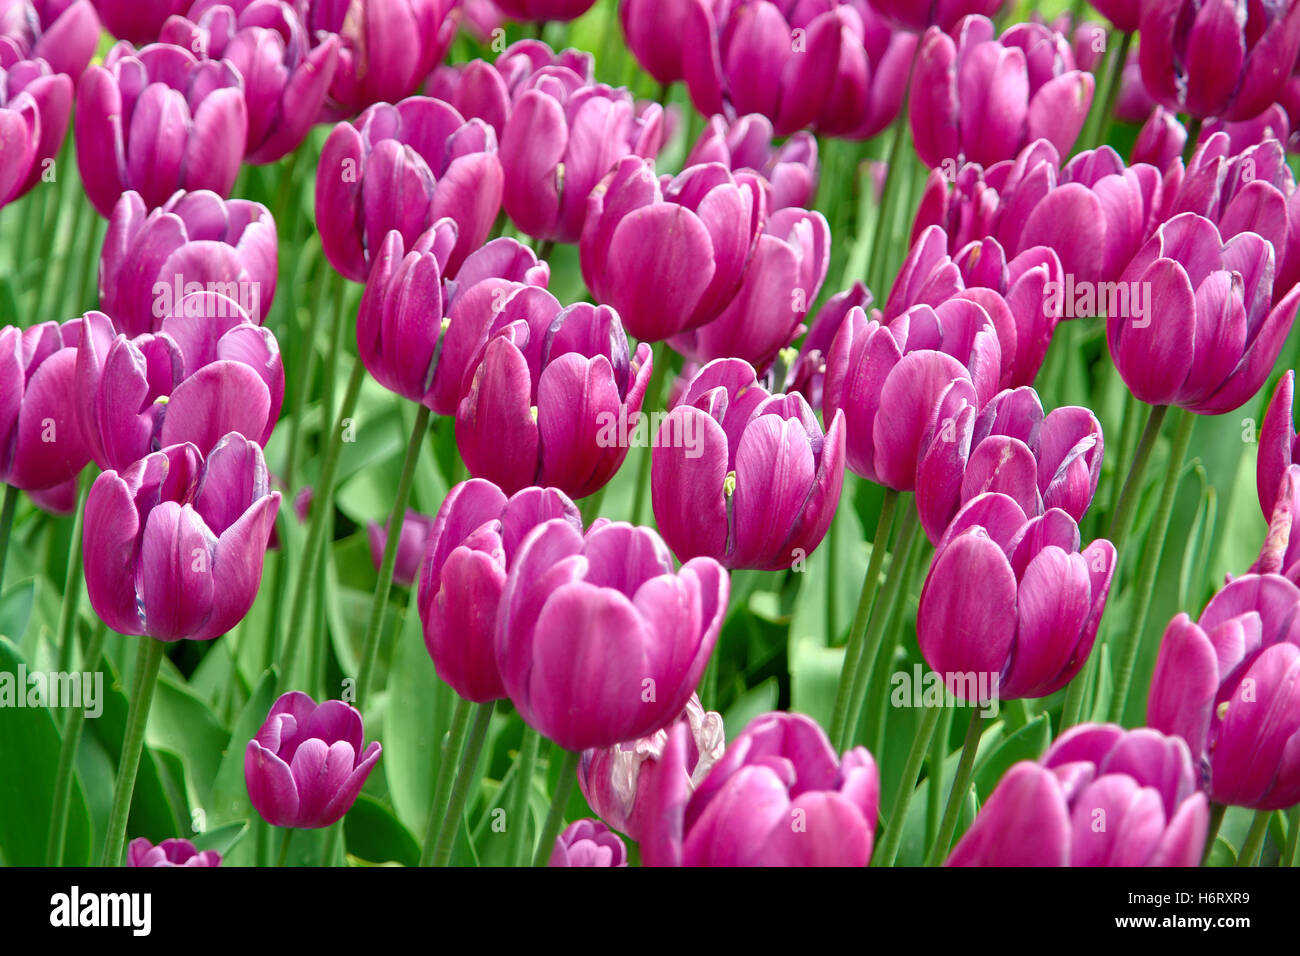 tulips plant bloom blossom flourish flourishing flower flowers summer summerly blossoms tulips bleed field of flowers - Stock Image